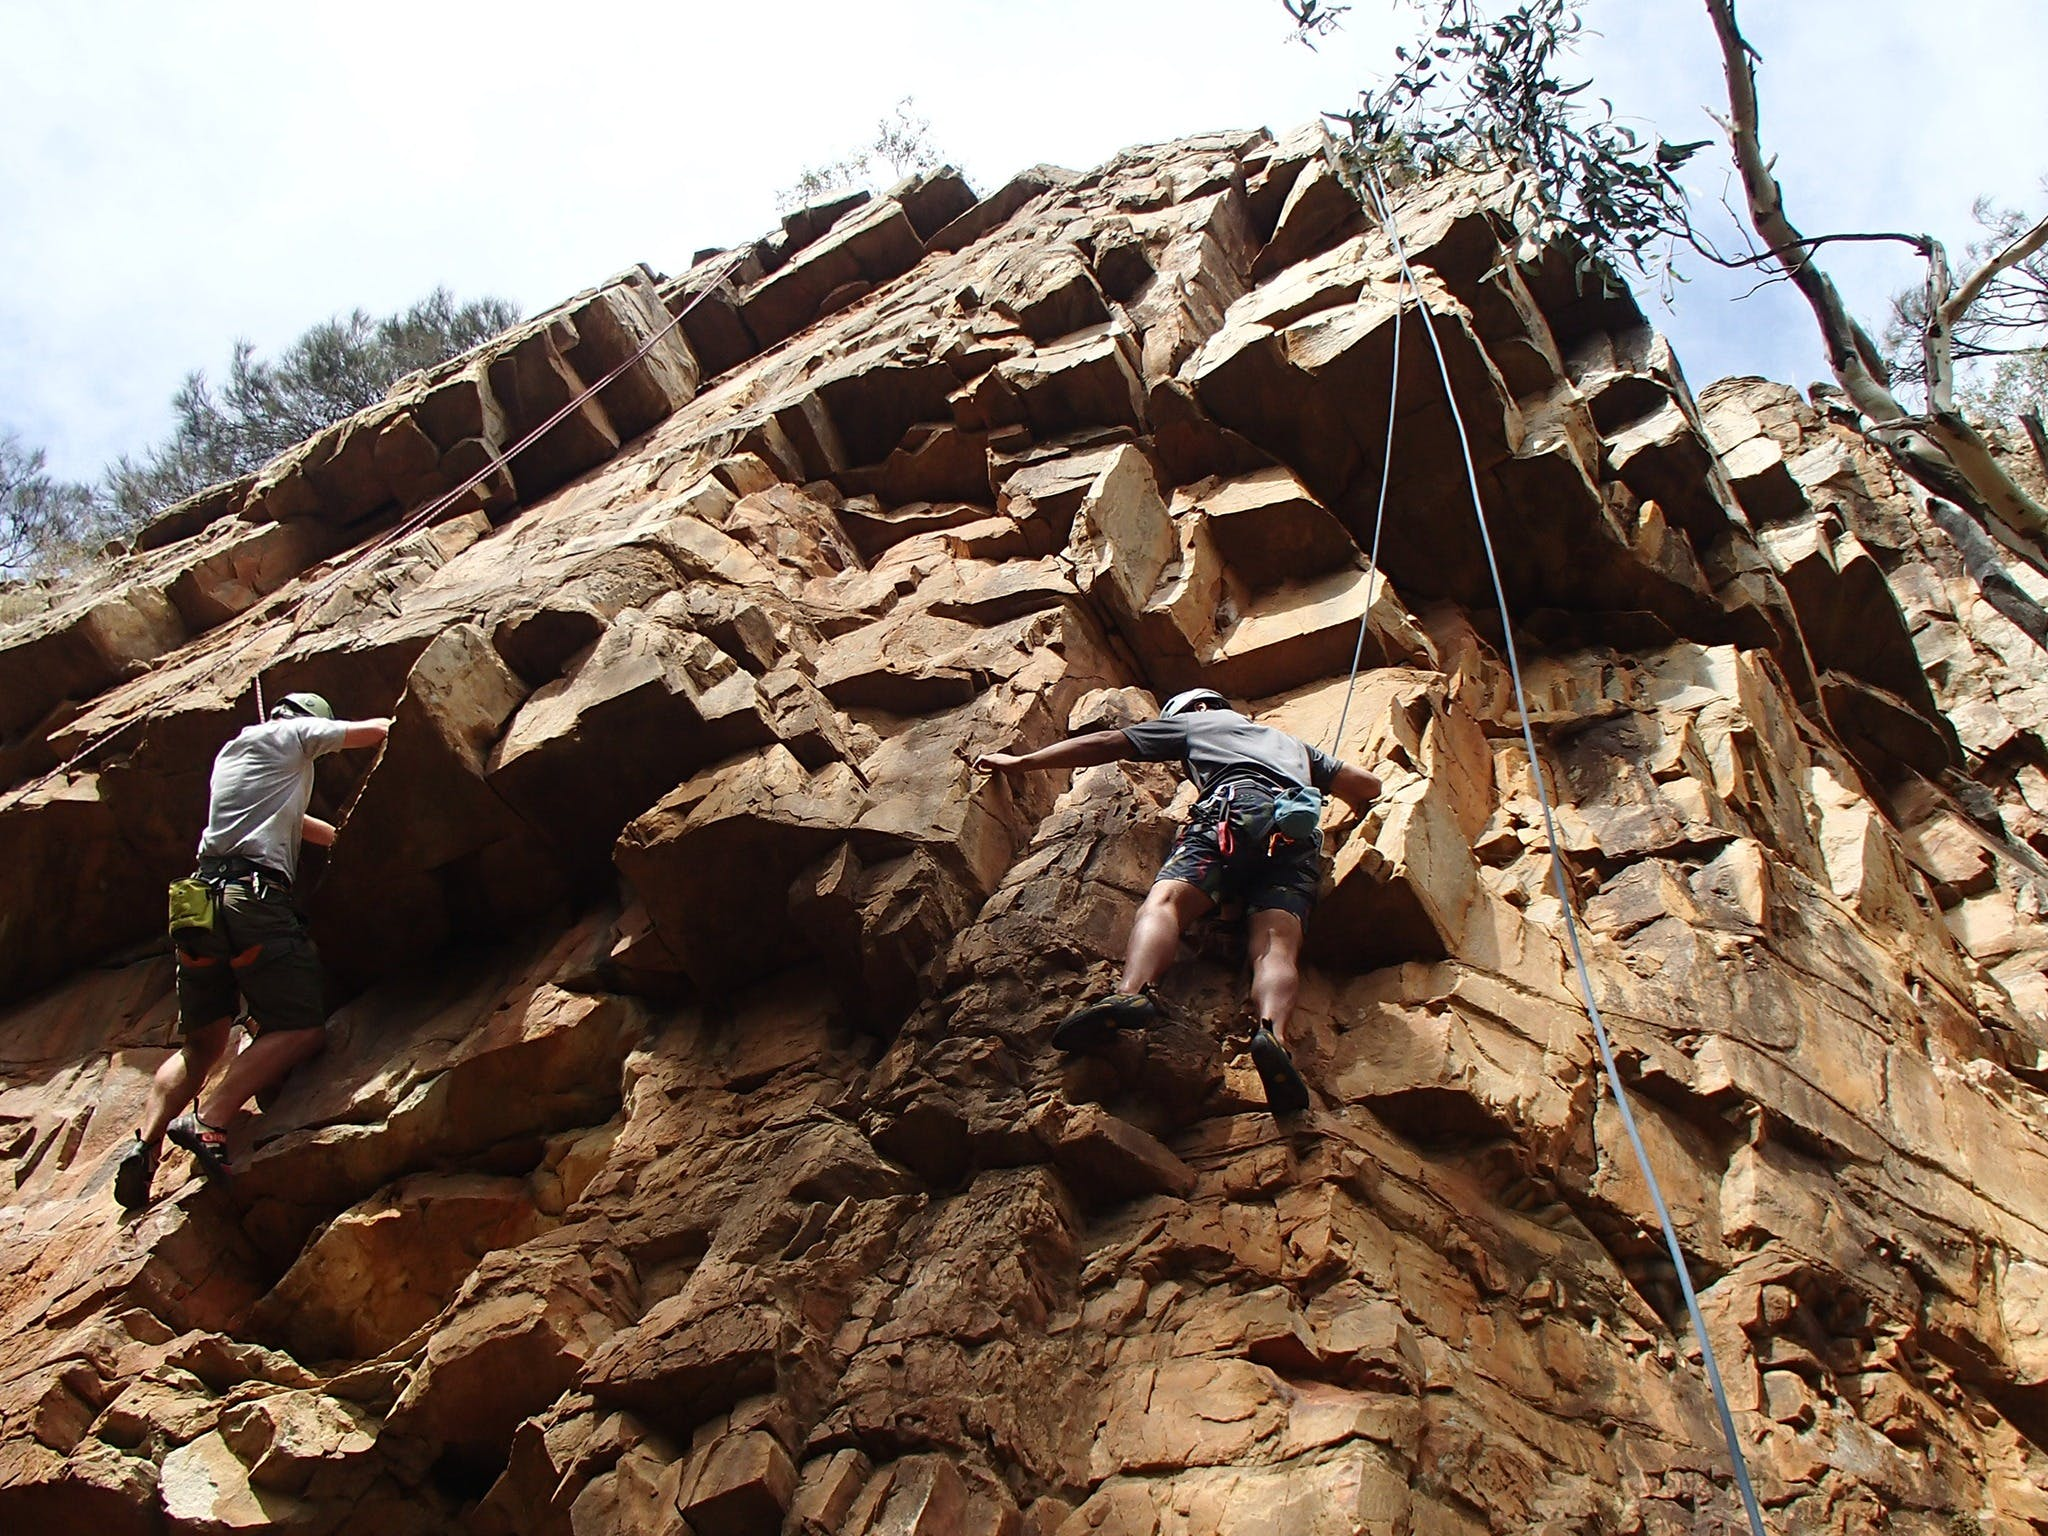 Rock Climbing in Morialta - Accommodation Sydney